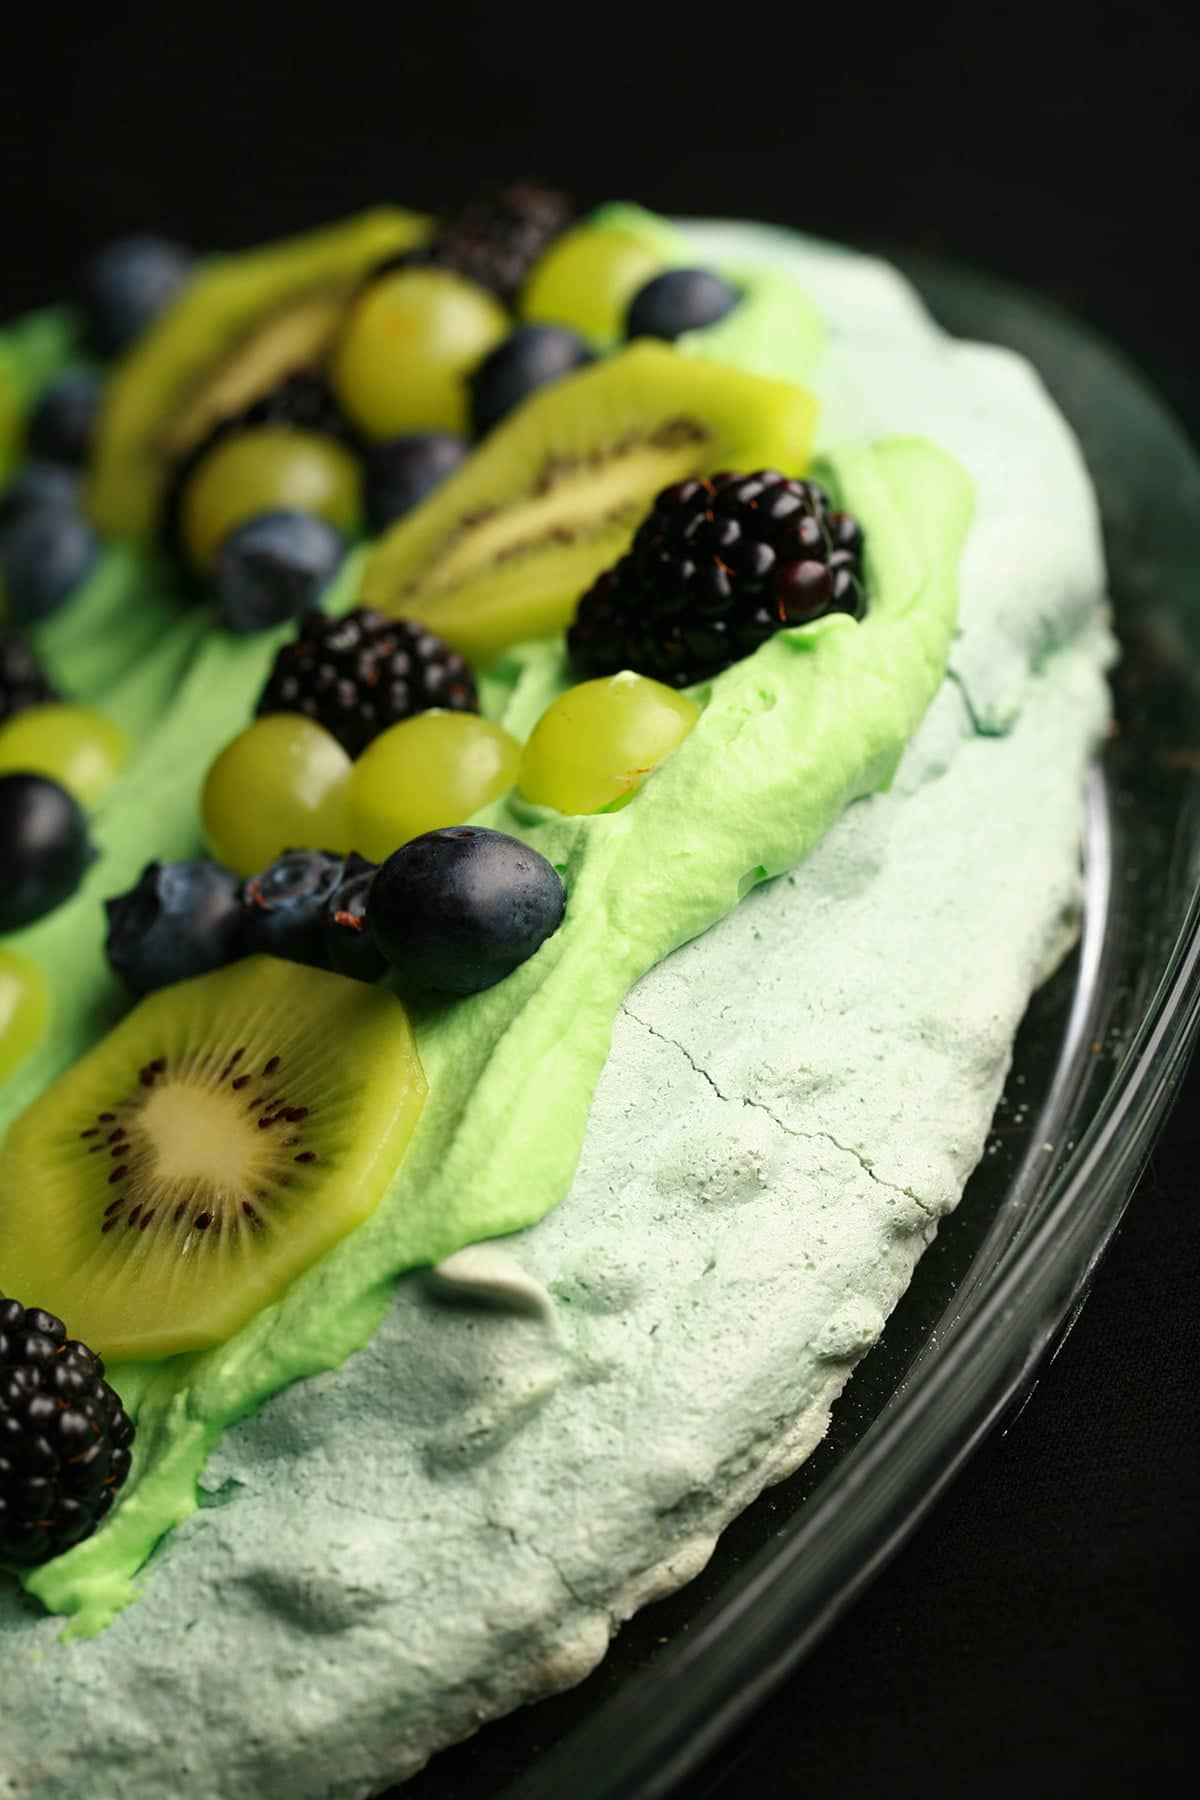 A blue meringue topped with green whipped cream, kiwi slices, green grapes, blueberries, and blackberries.